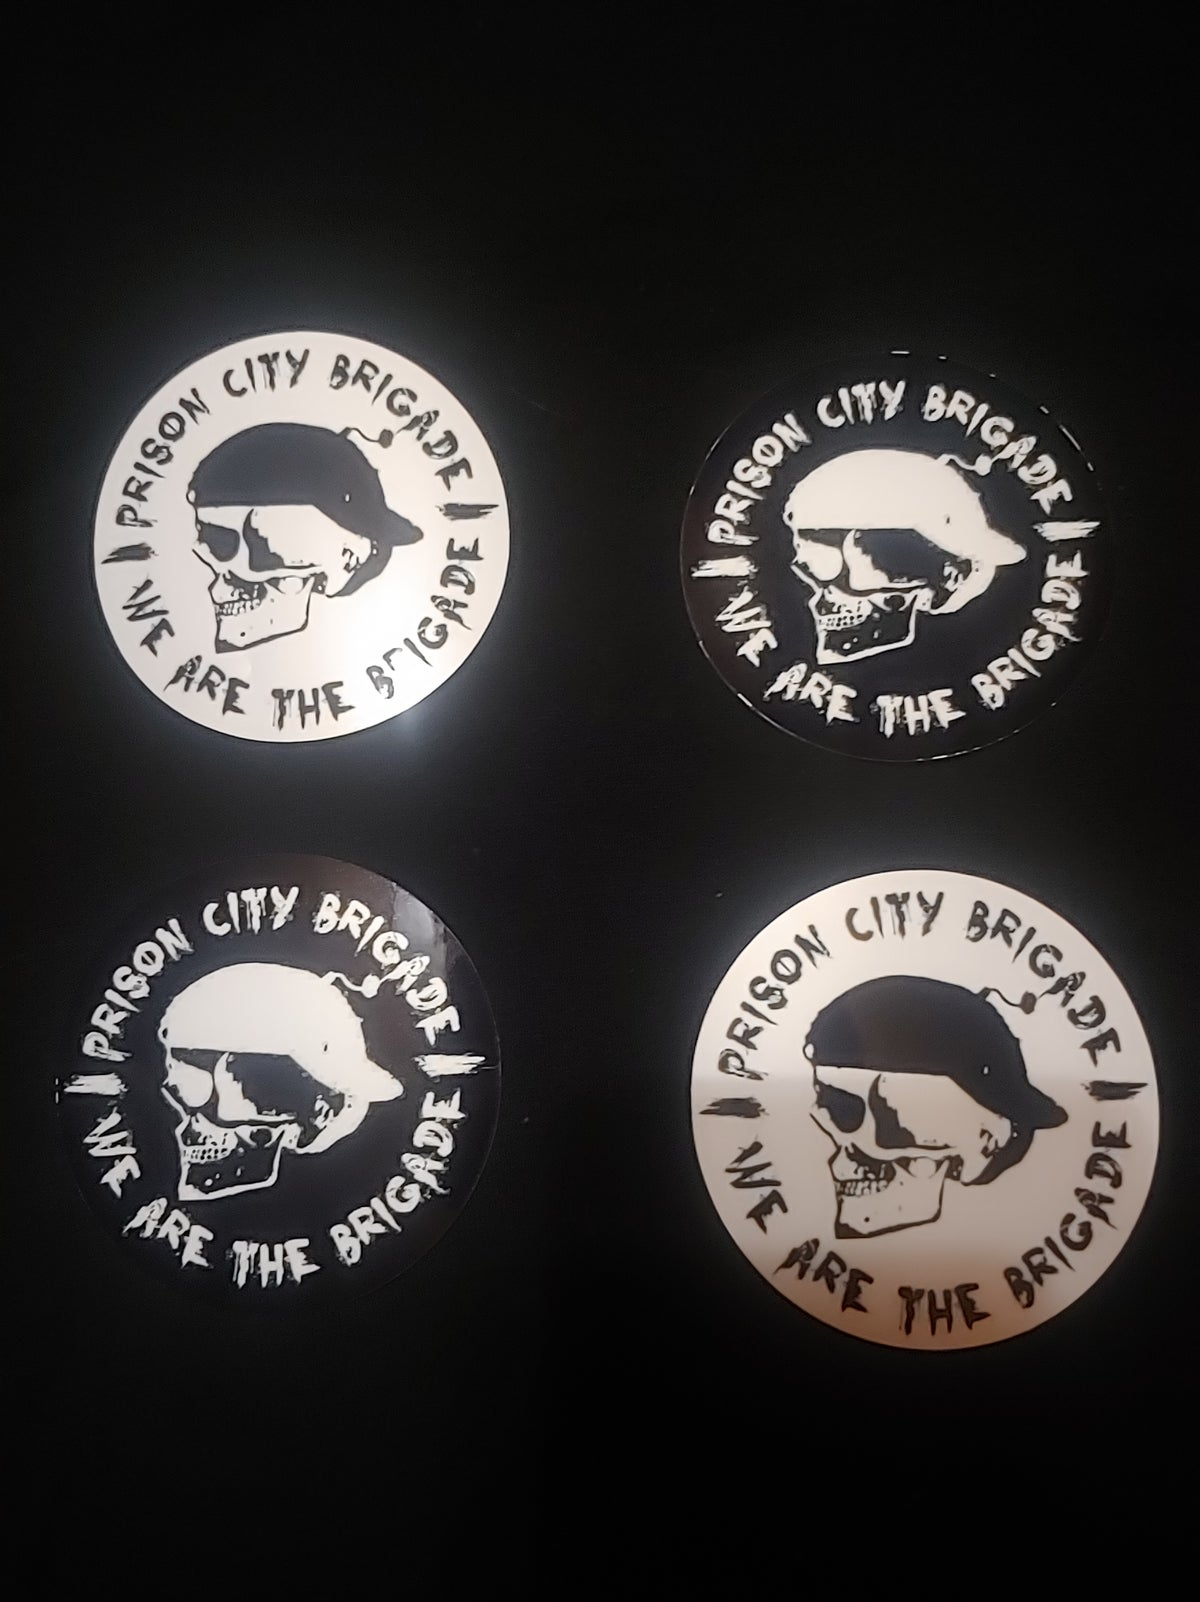 Prison City Brigade Stickers